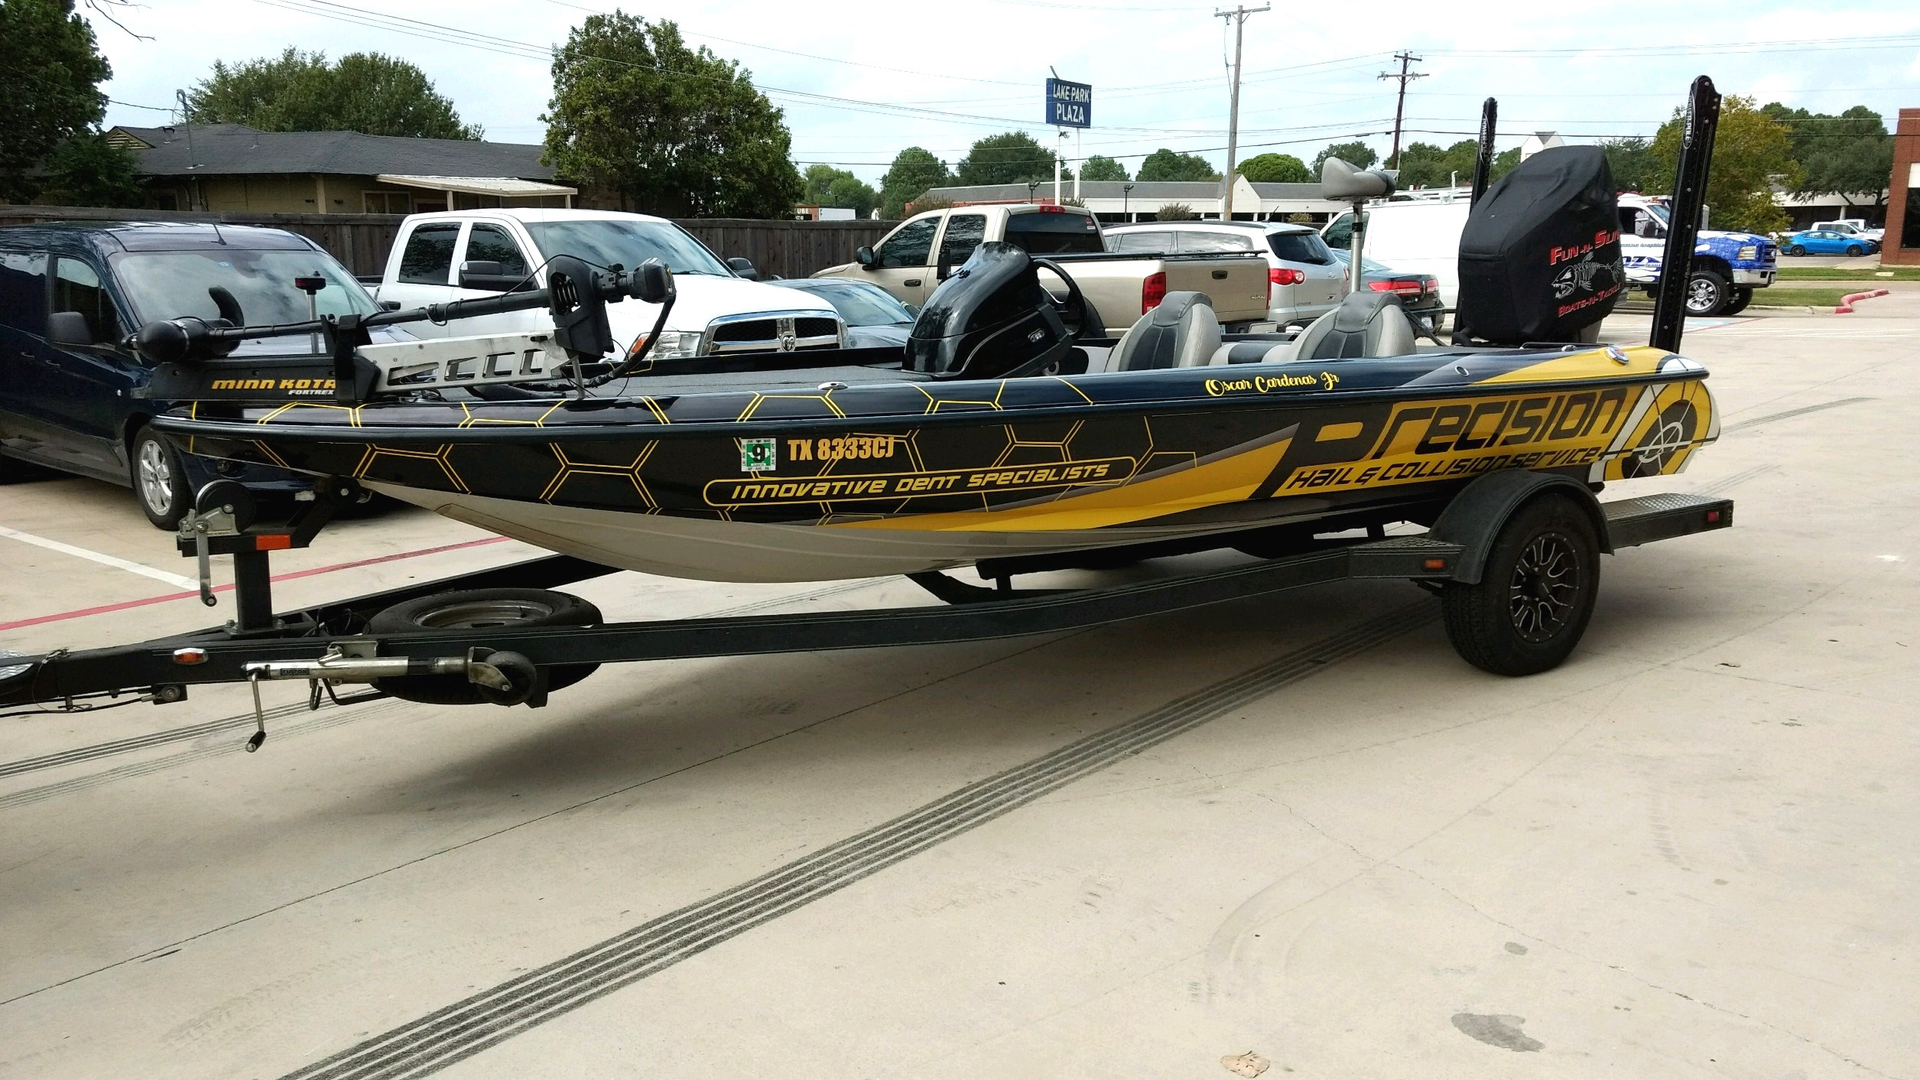 Vehicle Wraps Vehicle Graphics And Lettering Tiger Wrapz - Boat decalsamerican flag boat decals usa flag boat graphics xtreme digital